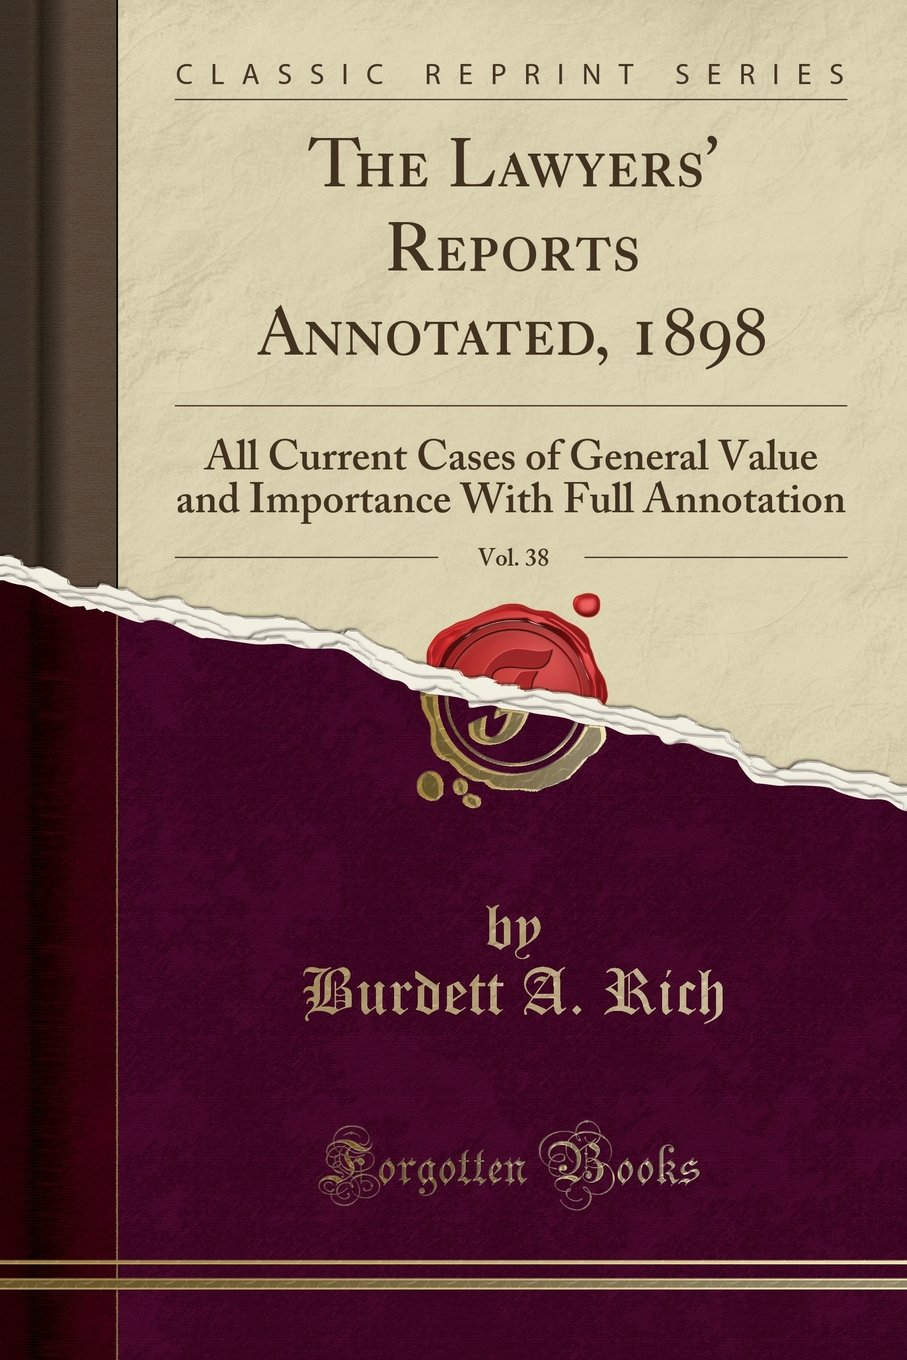 Download The Lawyers' Reports Annotated, 1898, Vol. 38: All Current Cases of General Value and Importance With Full Annotation (Classic Reprint) ebook